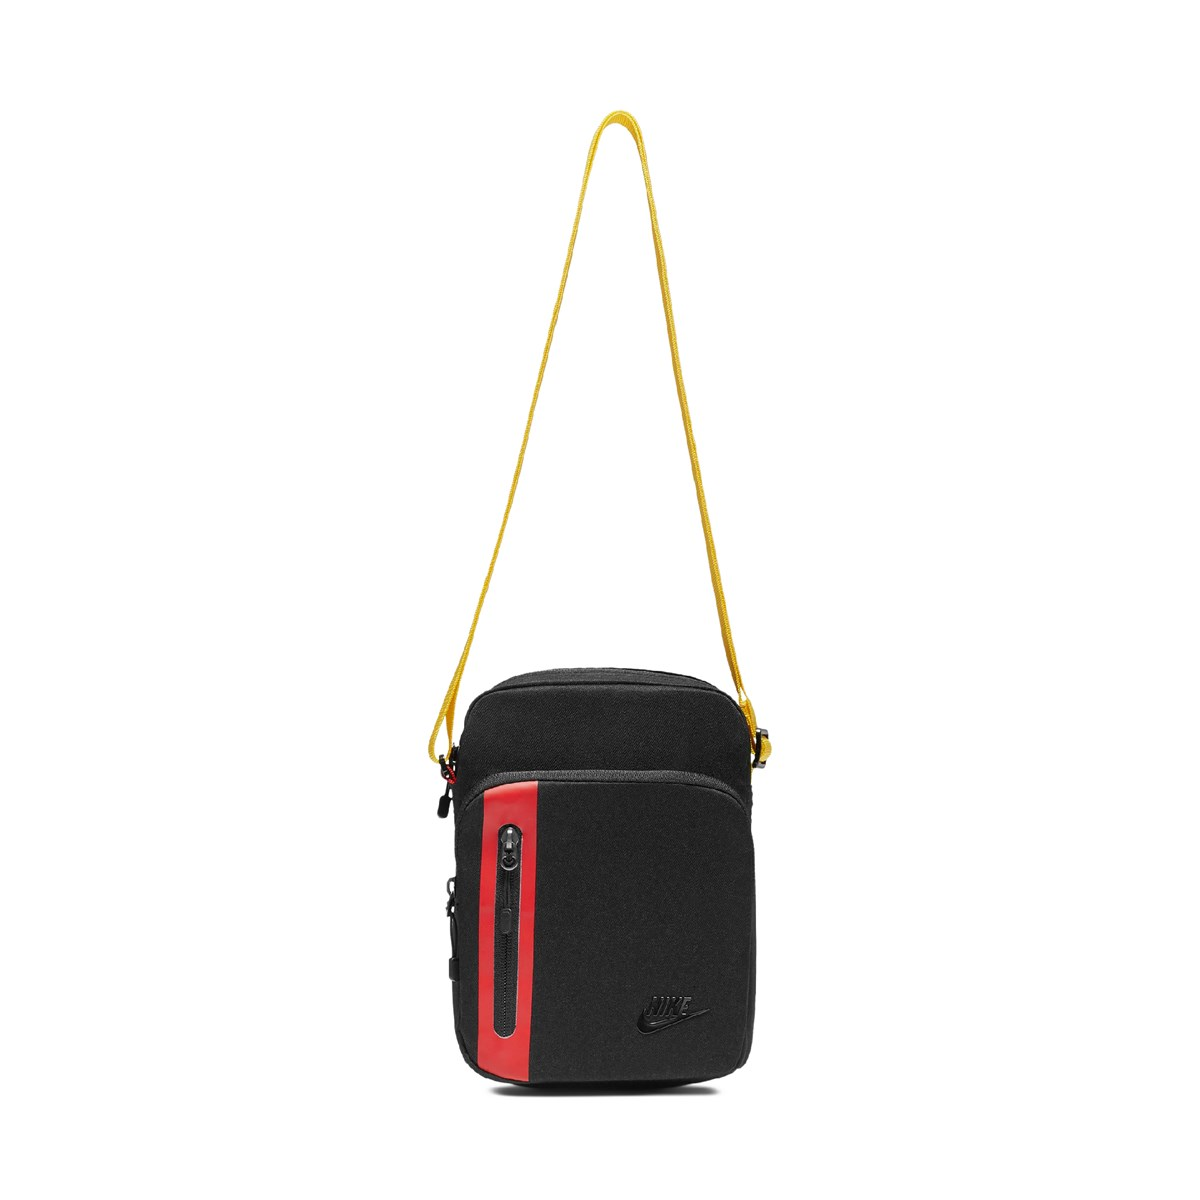 Tech Crossbody Bag in Black